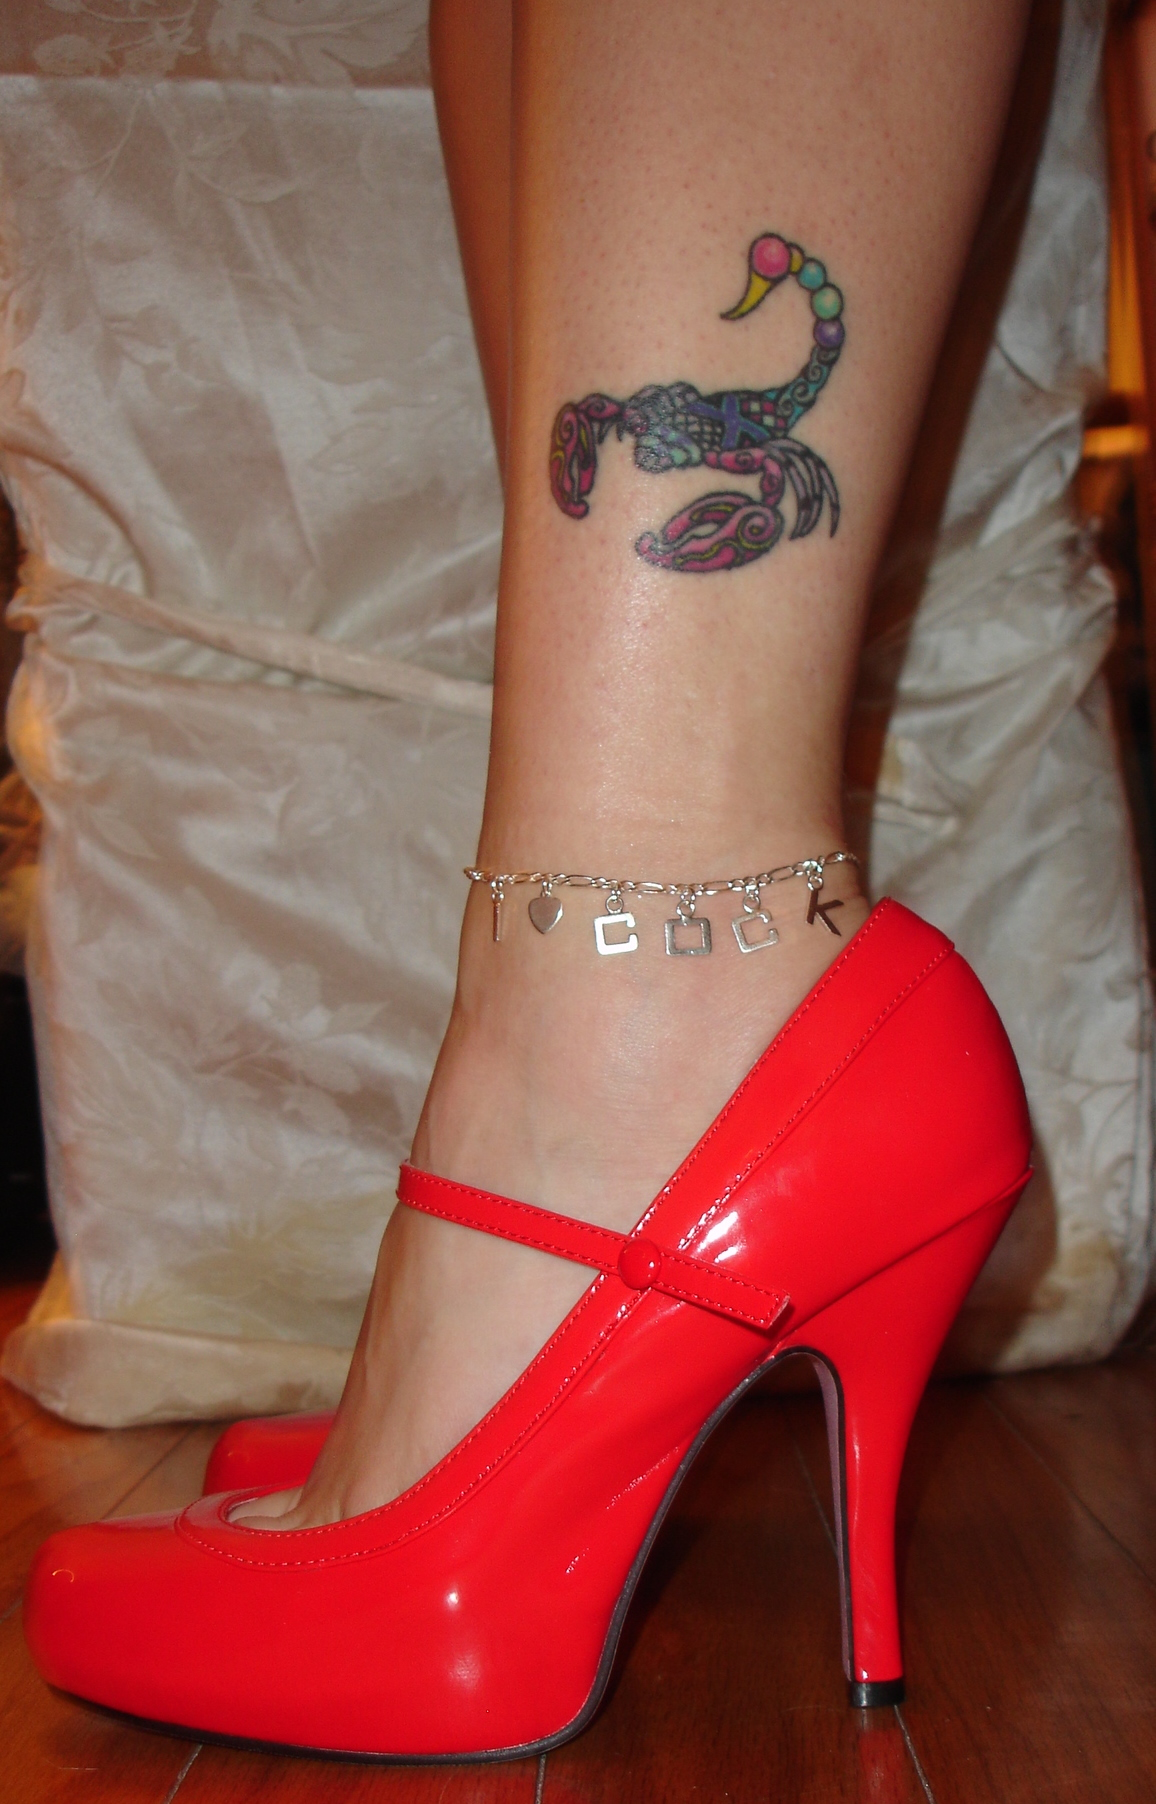 image Anklet chain what do they mean hotwife